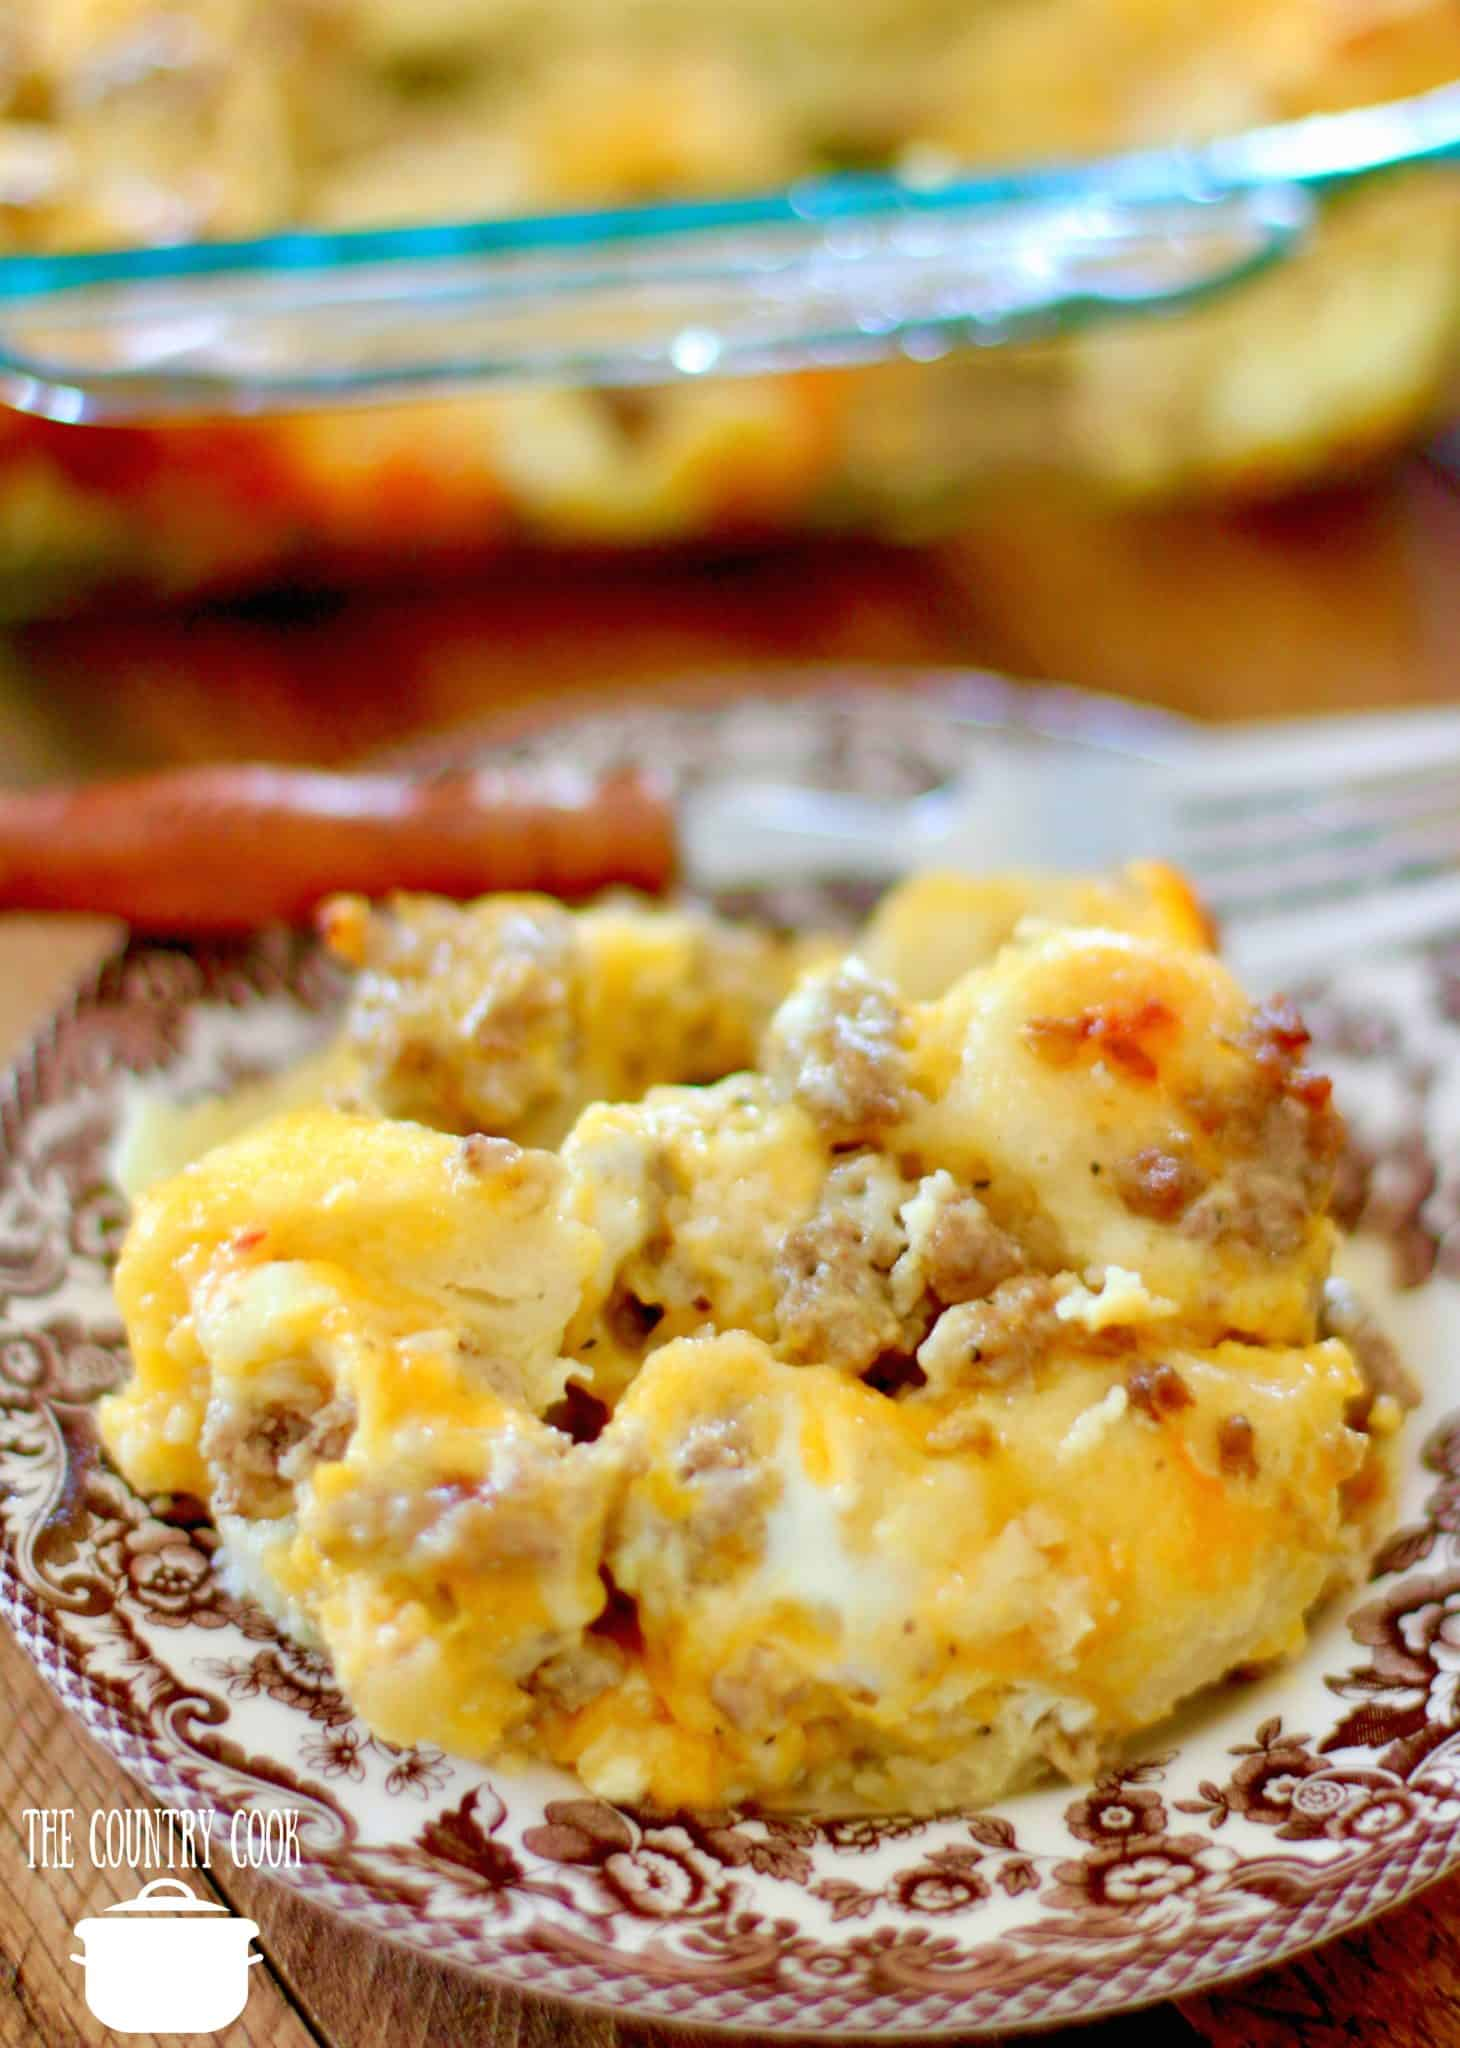 Easy Sausage Egg and Cheese Biscuit Casserole recipe. A serving shown on a brown and white small Spode plate.